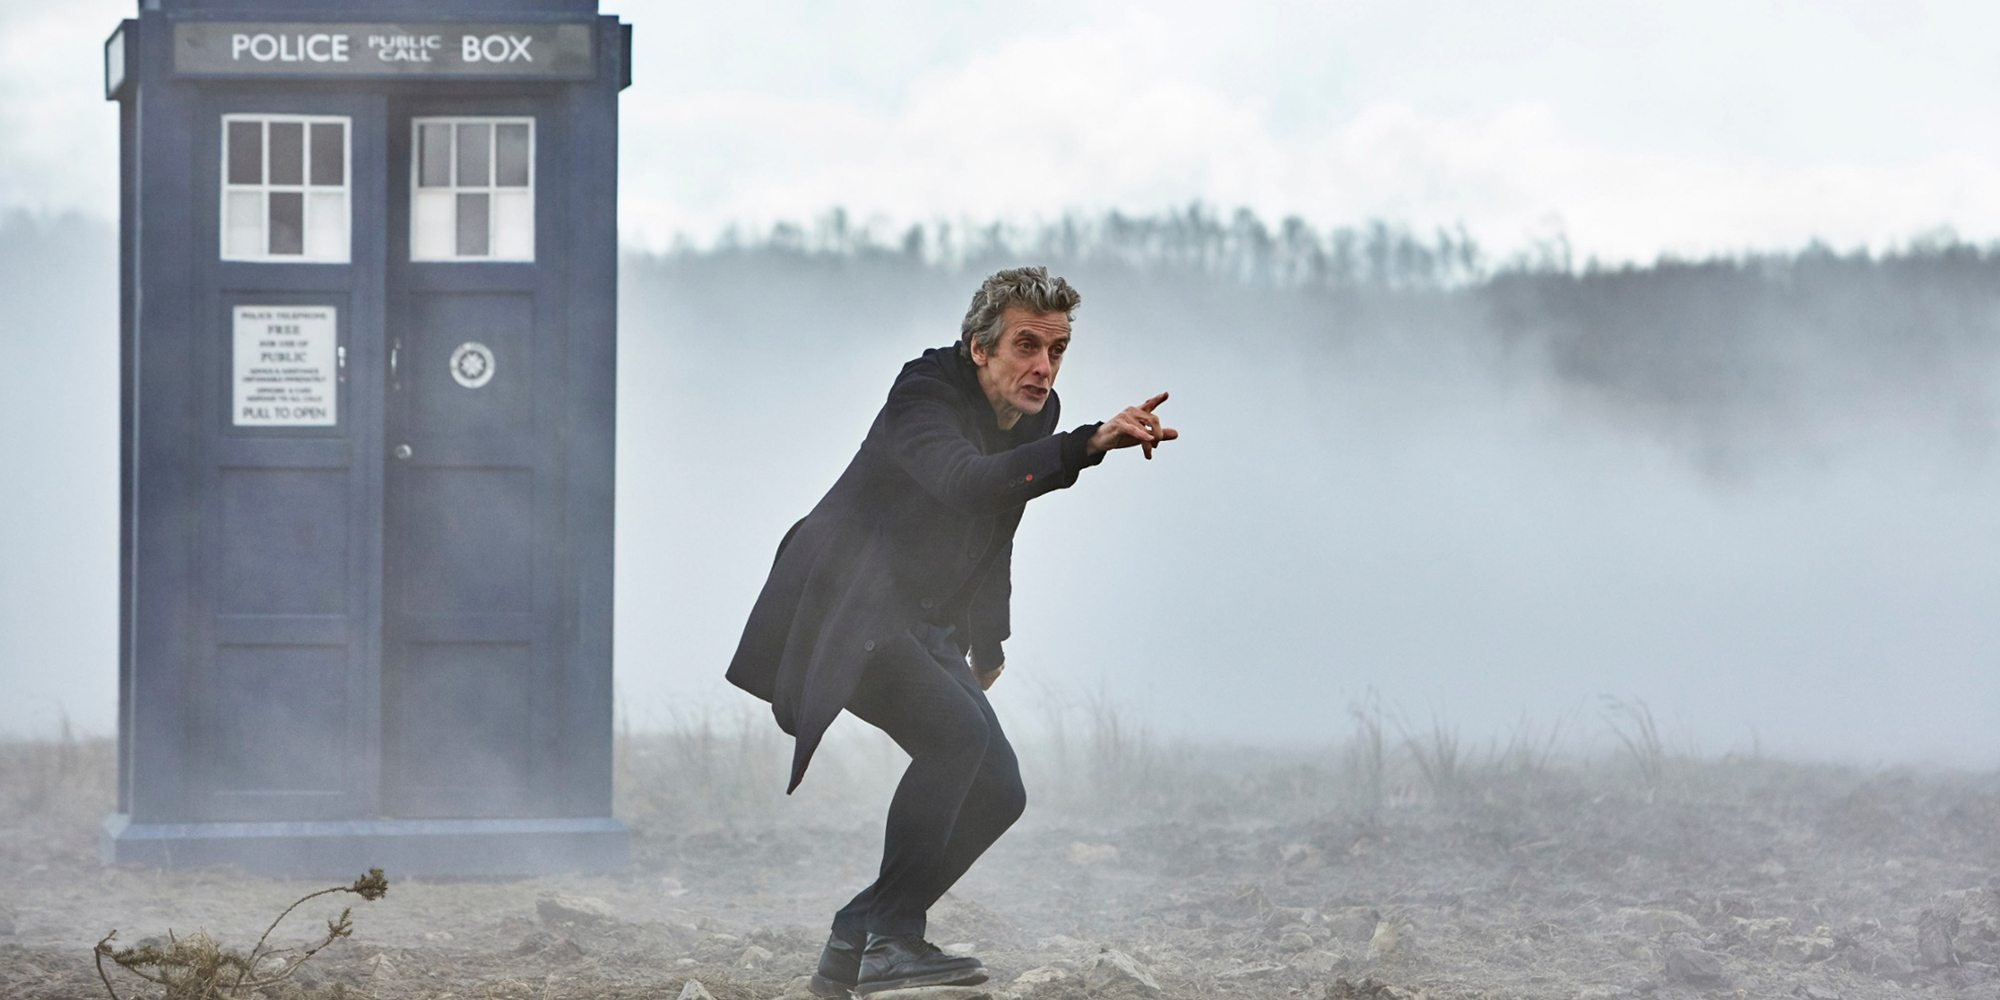 'Doctor Who' Opener Brings Classic Who Feel